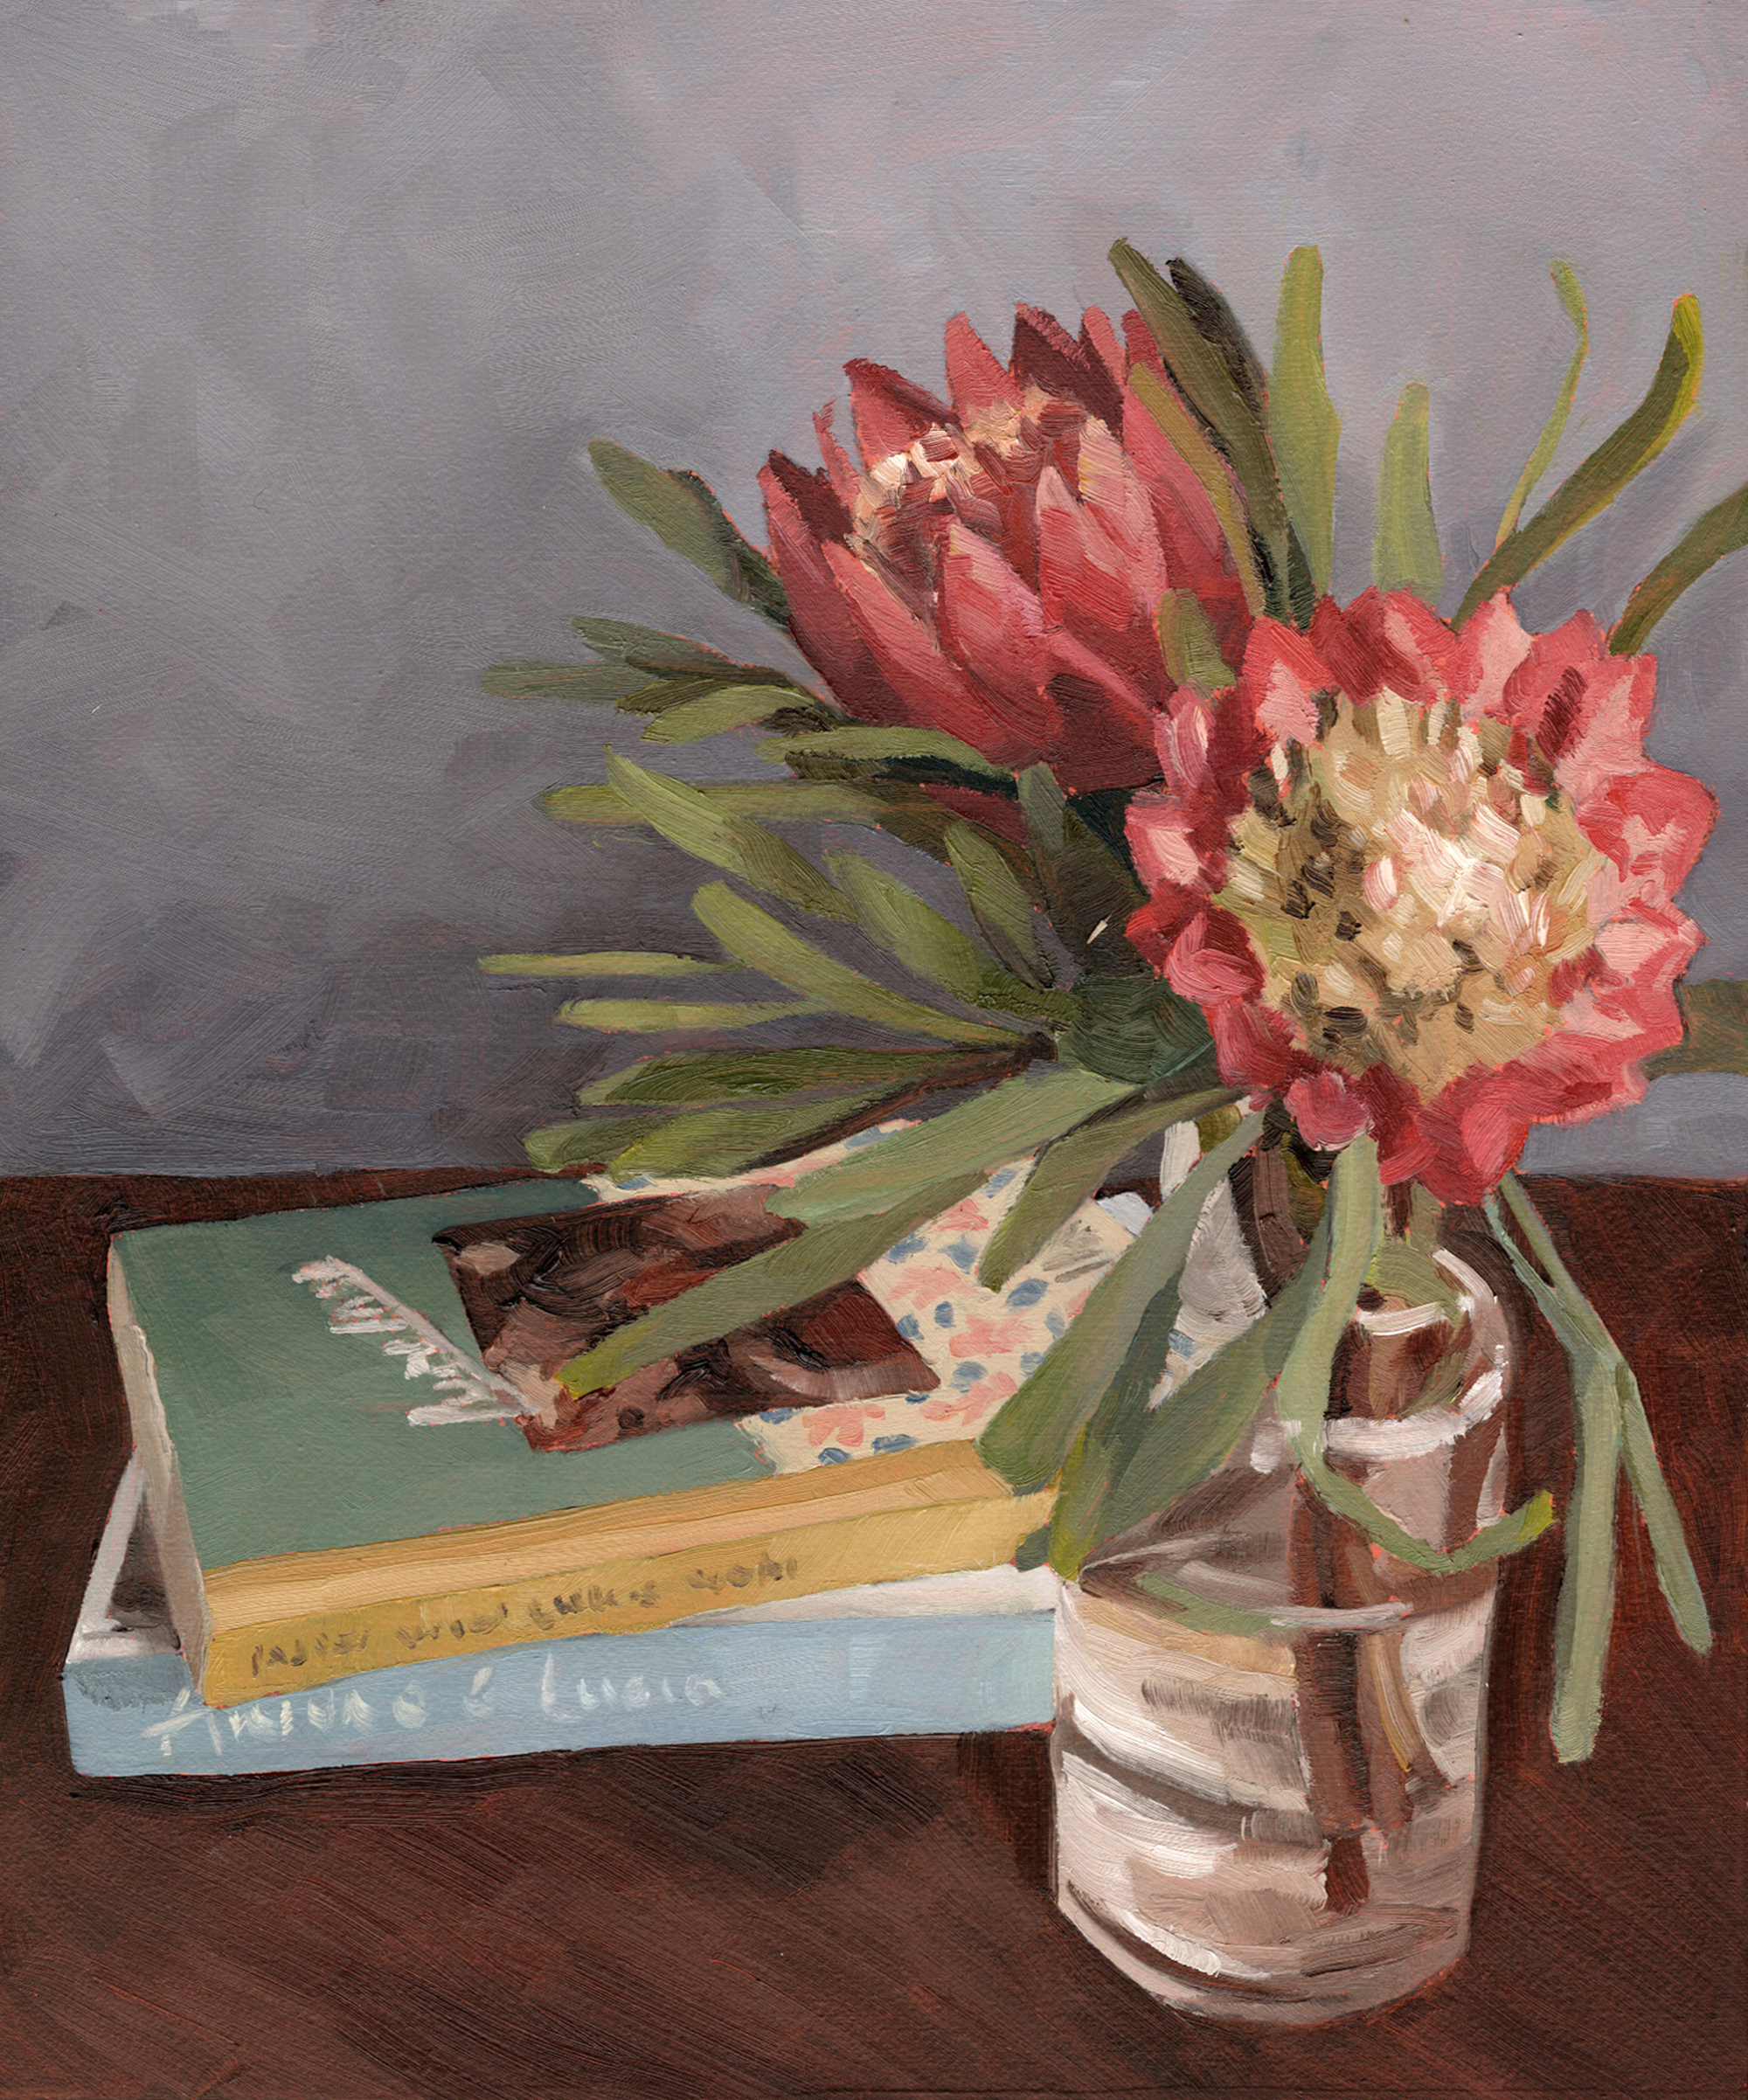 Lunch lady, protea repens by Emma Fuss